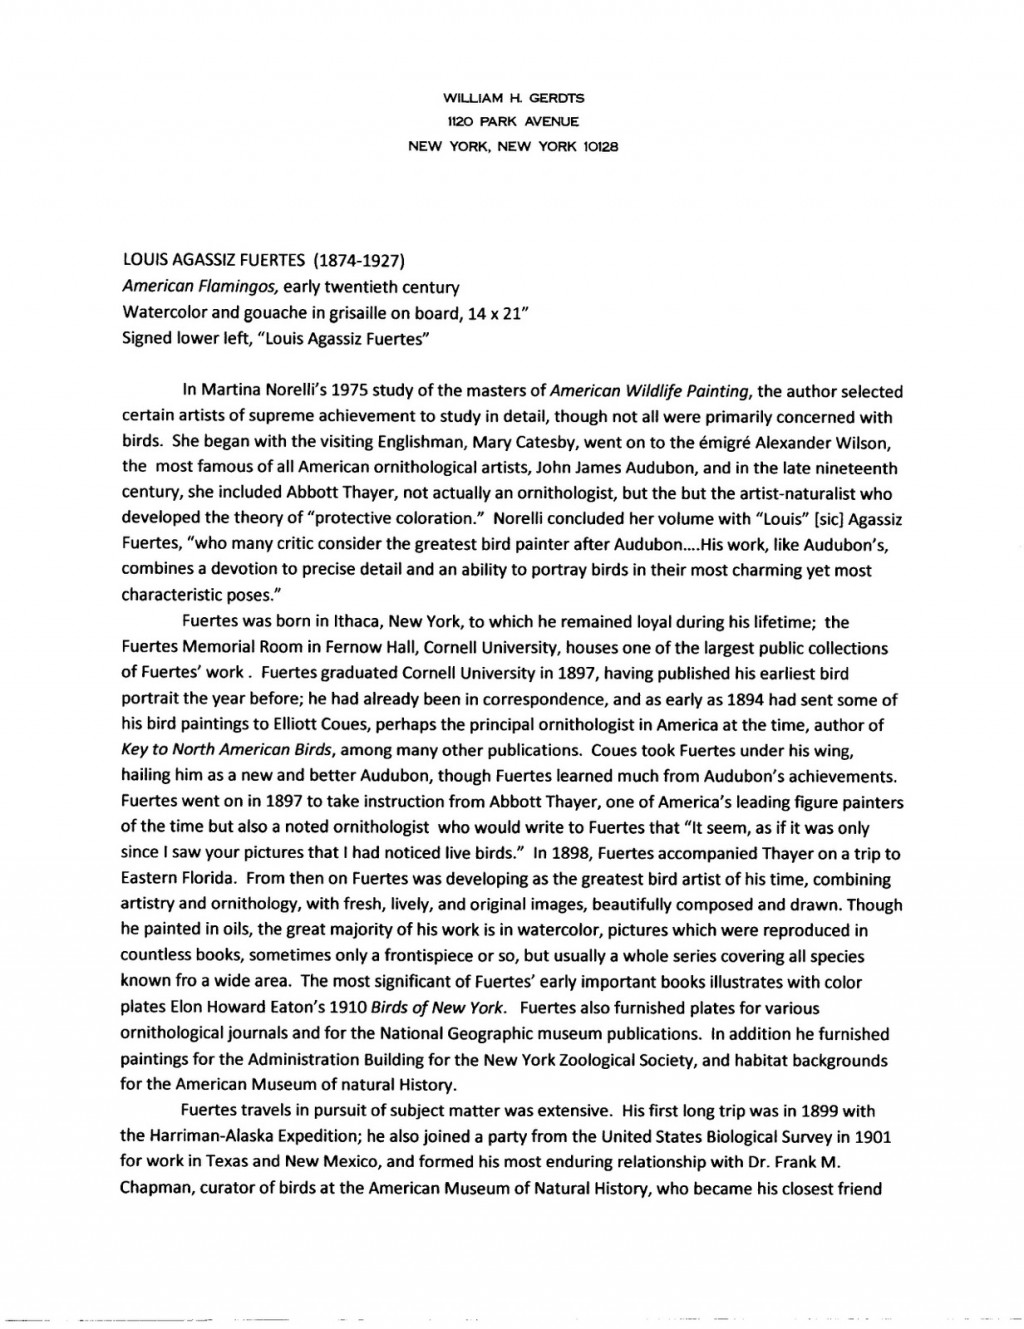 001 Essay Example Fuertes20american20flamingos20001 Graduate Fantastic School Sample Accounting Questions Counseling Large